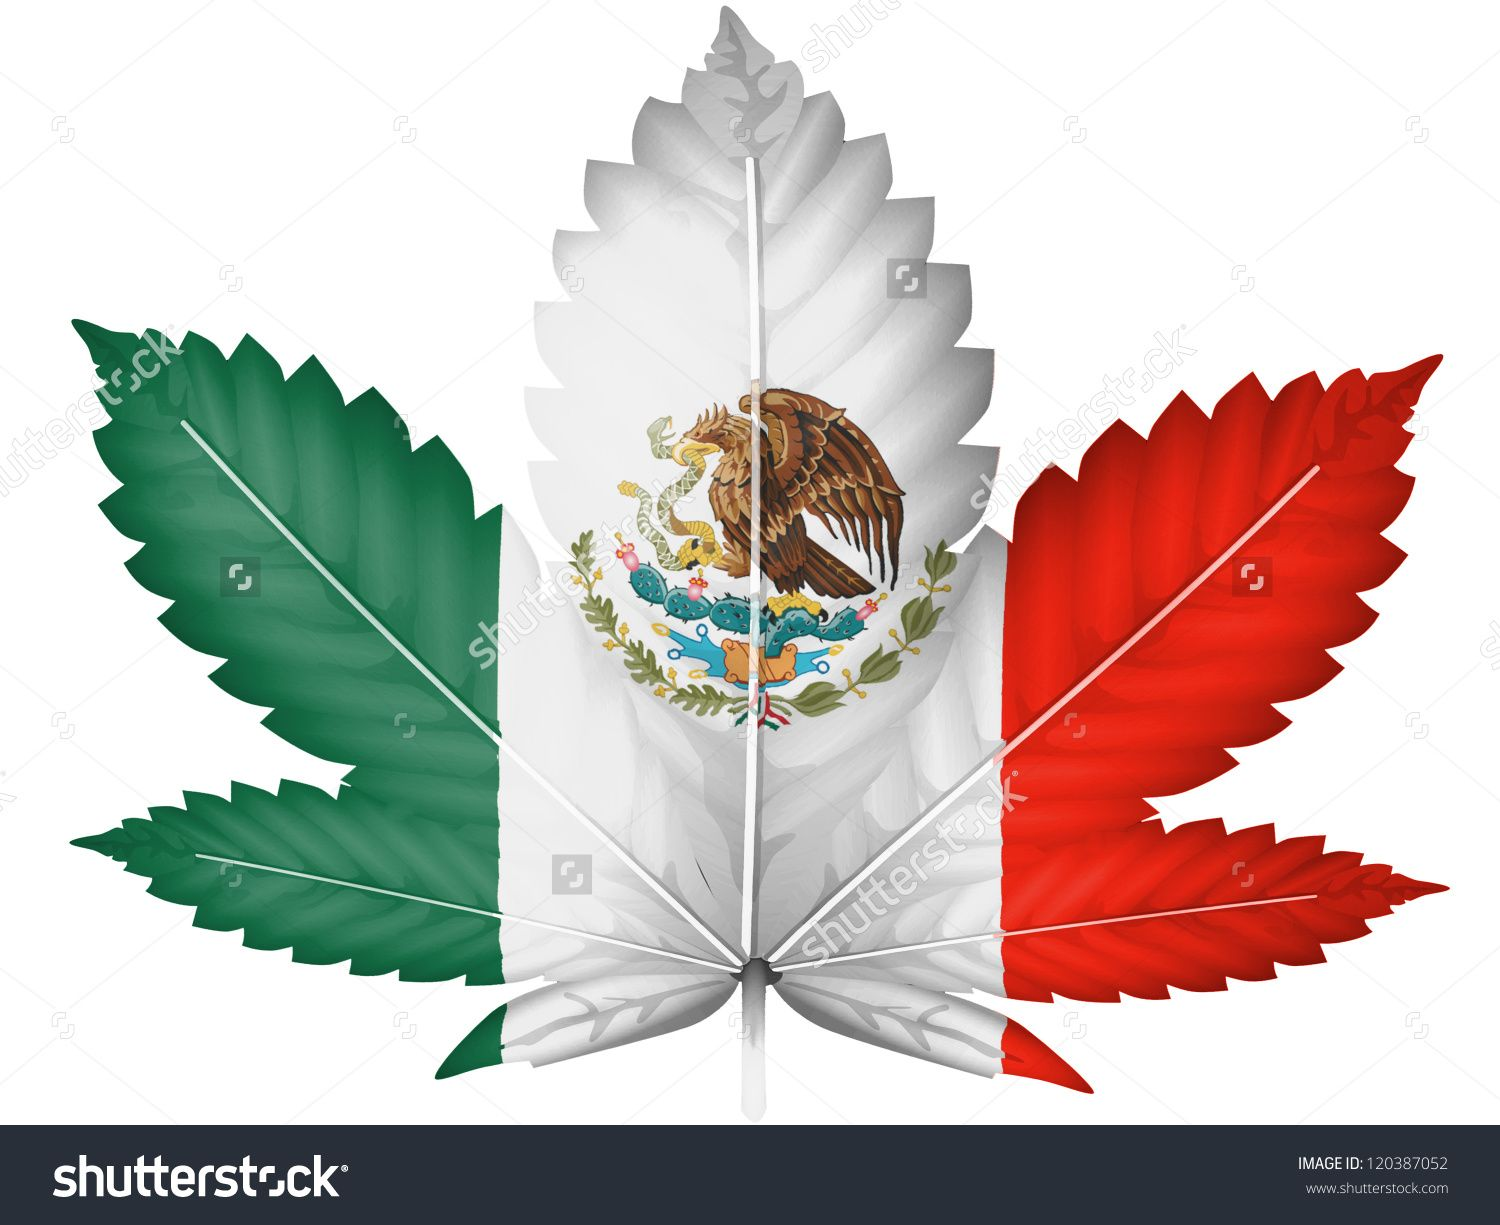 Stock photo the mexican flag painted on cannabis or marijuana leaf mexican senator roberto gil zuarth is leading a strong movement to legalize marijuana in mexico last week he introduced a bill in the mexican senate that biocorpaavc